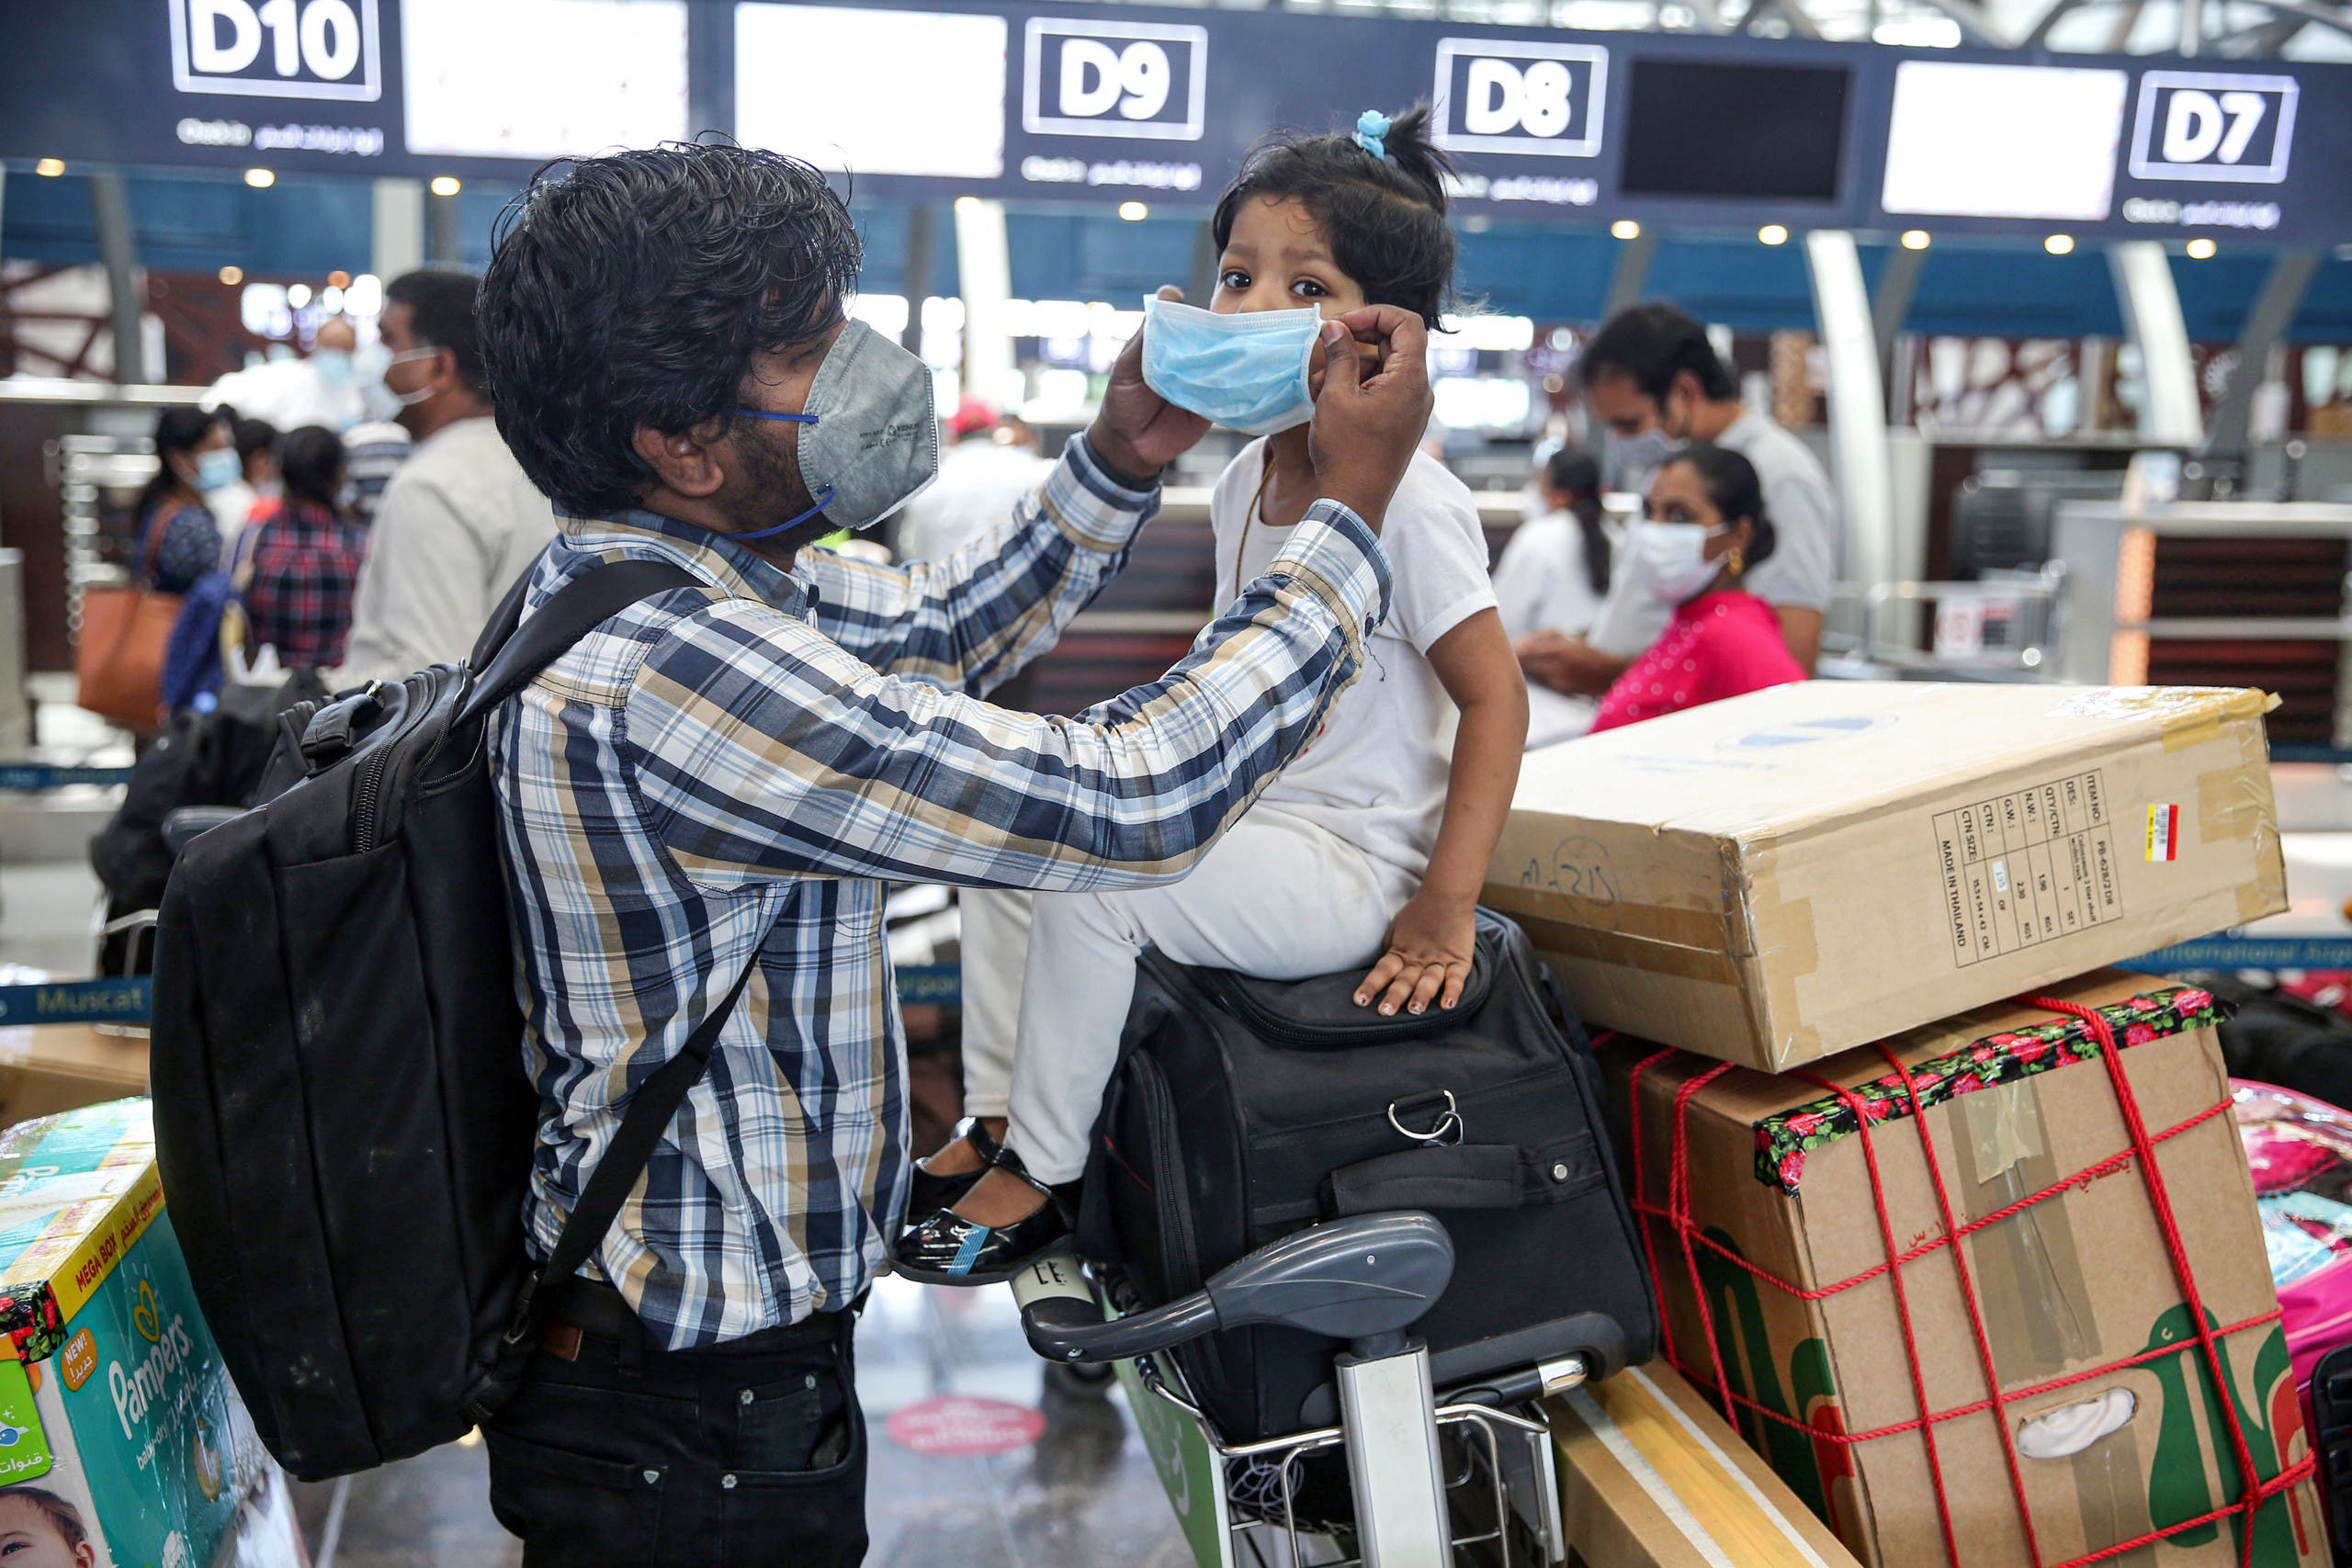 Members of an Indian family check in at the Muscat International Airport.(File photo)